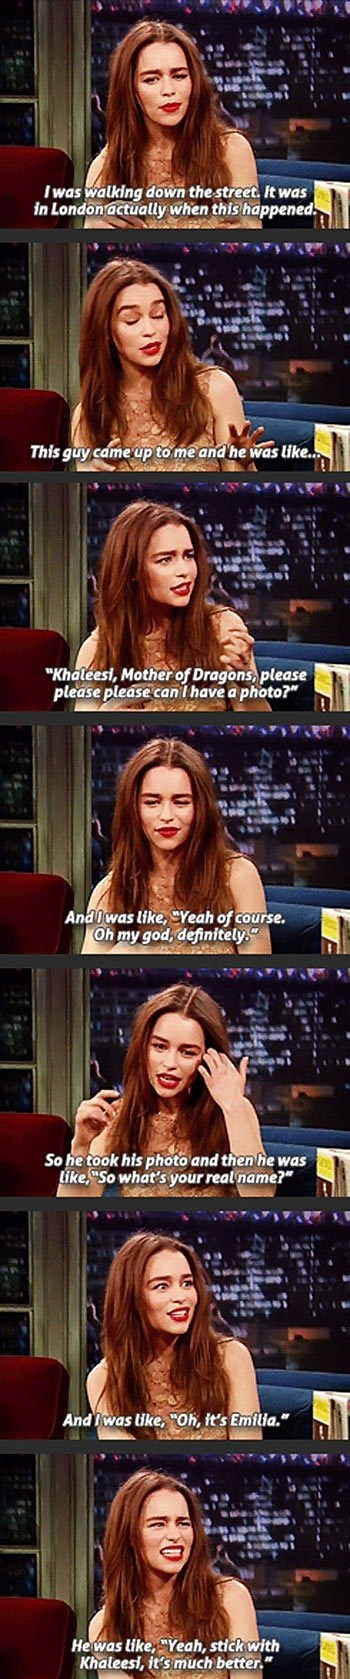 Game of Thrones,Emilia Clarke,interview